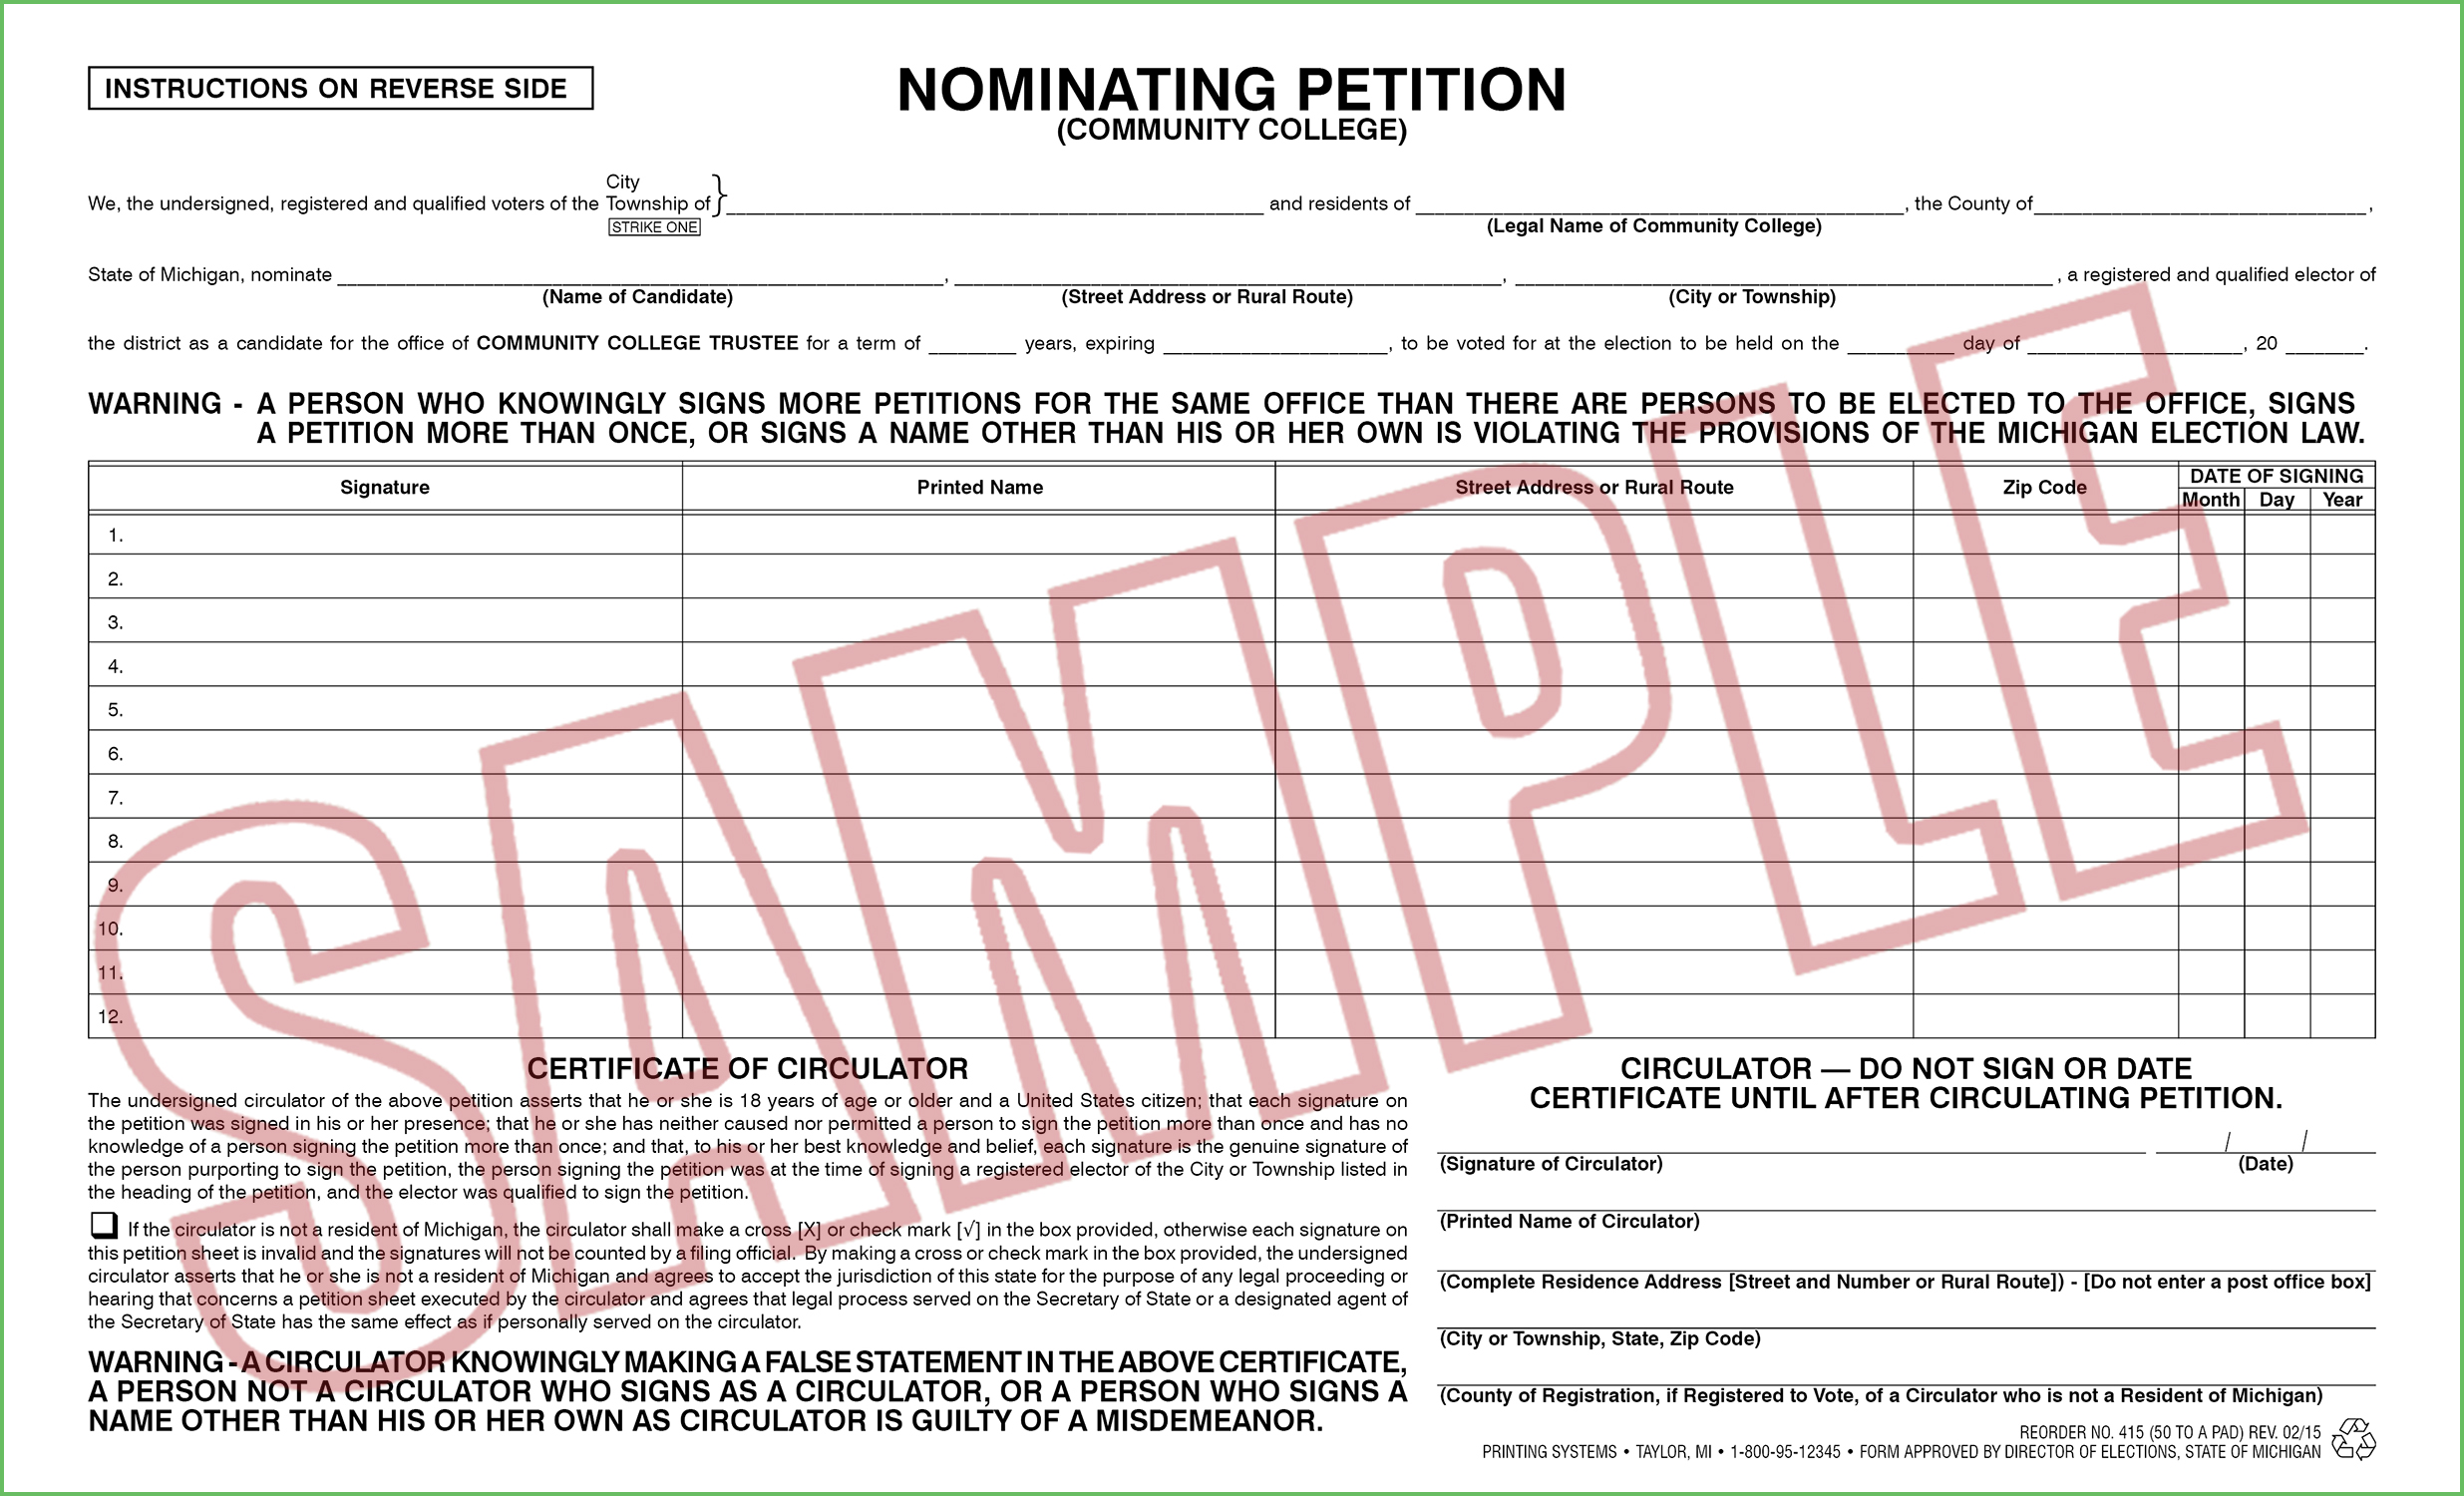 415 Nominating Petition (Community College) (50 per pad)